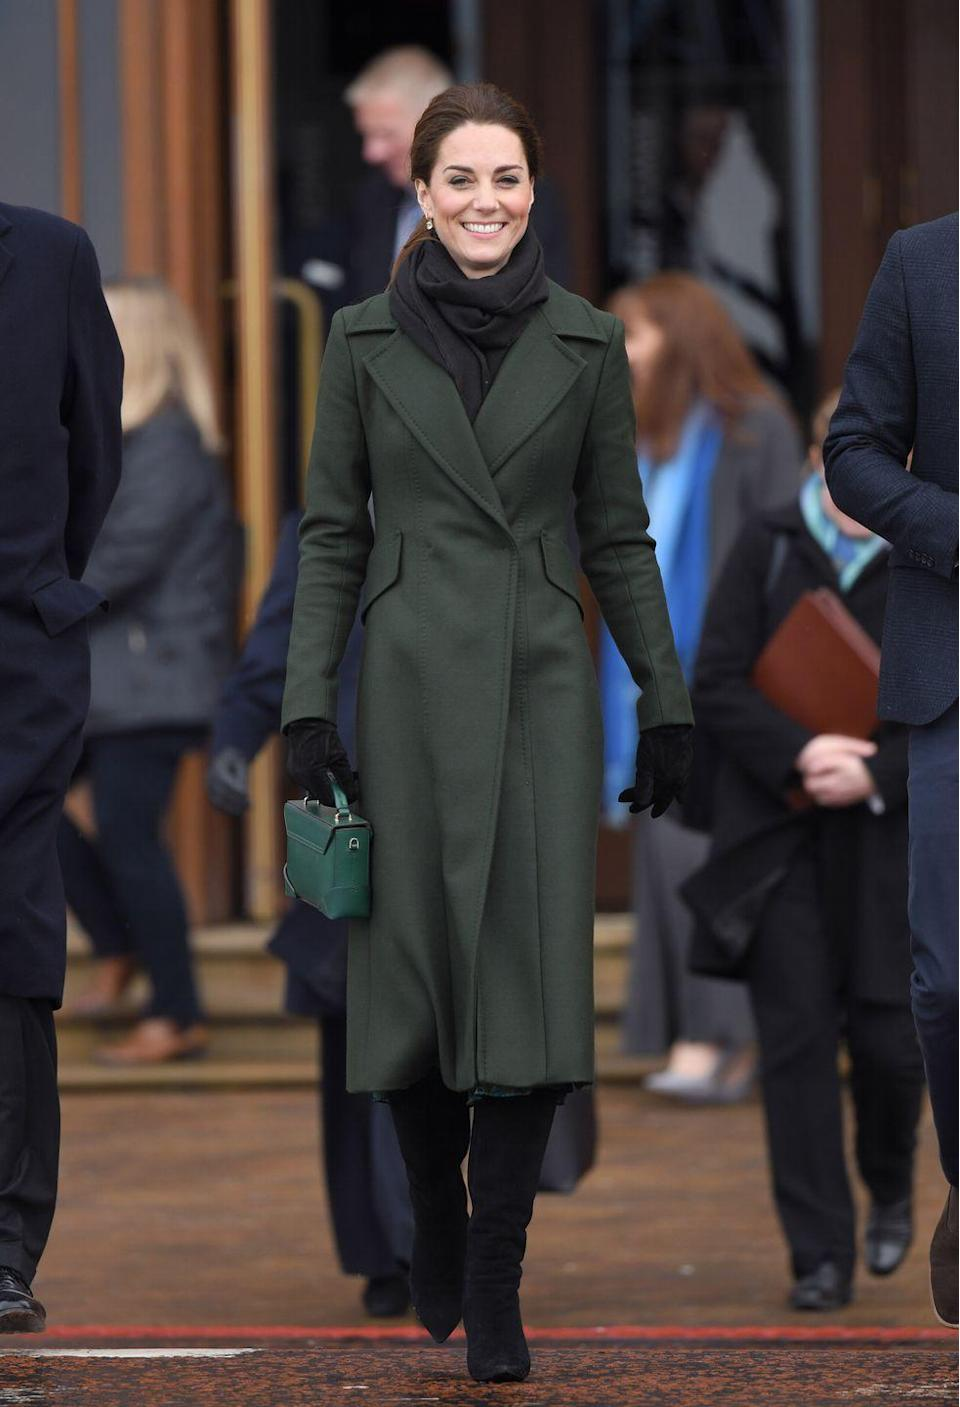 "<p>Kate Middleton sported a hunter green Sportmax coat, a black scarf and gloves, and high-heeled boots as she arrived in Blackpool. The duchess paired her look with her <a href=""https://www.shopbop.com/micro-bold-top-handle-bag/vp/v=1/1587486474.htm?extid=affprg_linkshare_SB-TnL5HPStwNw&cvosrc=affiliate.linkshare.TnL5HPStwNw&clickid=WHN0smWRpTHrSkY1saxx4y-tUkl0rp0S3Tvoys0&subid1=TnL5HPStwNw-Uc0lzrx6nexiHhEPCdAUtg&sharedid=42352"" rel=""nofollow noopener"" target=""_blank"" data-ylk=""slk:Manu Atelier"" class=""link rapid-noclick-resp"">Manu Atelier </a>suede top handle bag and small square drop earrings. </p><p><a class=""link rapid-noclick-resp"" href=""https://go.redirectingat.com?id=74968X1596630&url=https%3A%2F%2Fwww.shopbop.com%2Fmicro-bold-top-handle-bag%2Fvp%2Fv%3D1%2F1587486474.htm%3Fextid%3Daffprg_linkshare_SB-TnL5HPStwNw%26cvosrc%3Daffiliate.linkshare.TnL5HPStwNw%26clickid%3DWHN0smWRpTHrSkY1saxx4y-tUkl0rp0S3Tvoys0%26subid1%3DTnL5HPStwNw-Uc0lzrx6nexiHhEPCdAUtg%26sharedid%3D42352&sref=https%3A%2F%2Fwww.townandcountrymag.com%2Fstyle%2Ffashion-trends%2Fnews%2Fg1633%2Fkate-middleton-fashion%2F"" rel=""nofollow noopener"" target=""_blank"" data-ylk=""slk:Shop Similar""><strong>Shop Similar</strong> </a> <em>Micro Bold Top Handle Bag, Manu Atelier, $545</em></p><p><strong><a class=""link rapid-noclick-resp"" href=""https://go.redirectingat.com?id=74968X1596630&url=https%3A%2F%2Fwww.bloomingdales.com%2Fshop%2Fproduct%2Fkate-spade-new-york-square-leverback-earrings%3FID%3D1291641%26pla_country%3DUS%26cm_mmc%3DGoogle-PLA-ADC-_-Jewelry%2B%2526%2BAccessories-NA-_-Kate%2BSpade%2BNew%2BYork-_-98686397132USA%26CAWELAID%3D120156070001429841%26CAGPSPN%3Dpla%26CAAGID%3D47685645839%26CATCI%3Daud-298639203740%253Apla-384024108716%26CATARGETID%3D120156070006125192%26cadevice%3Dc%26gclid%3DCjwKCAiAwojkBRBbEiwAeRcJZMDr_eANnZbNvphConrPCBoiEGp46IPI6lrdcMSRHJvHsRI4Jxj9MBoCvUsQAvD_BwE&sref=https%3A%2F%2Fwww.townandcountrymag.com%2Fstyle%2Ffashion-trends%2Fnews%2Fg1633%2Fkate-middleton-fashion%2F"" rel=""nofollow noopener"" target=""_blank"" data-ylk=""slk:Shop Similar"">Shop Similar</a> </strong><em>Square Leverback Earrings, Kate Spade, $48</em></p>"